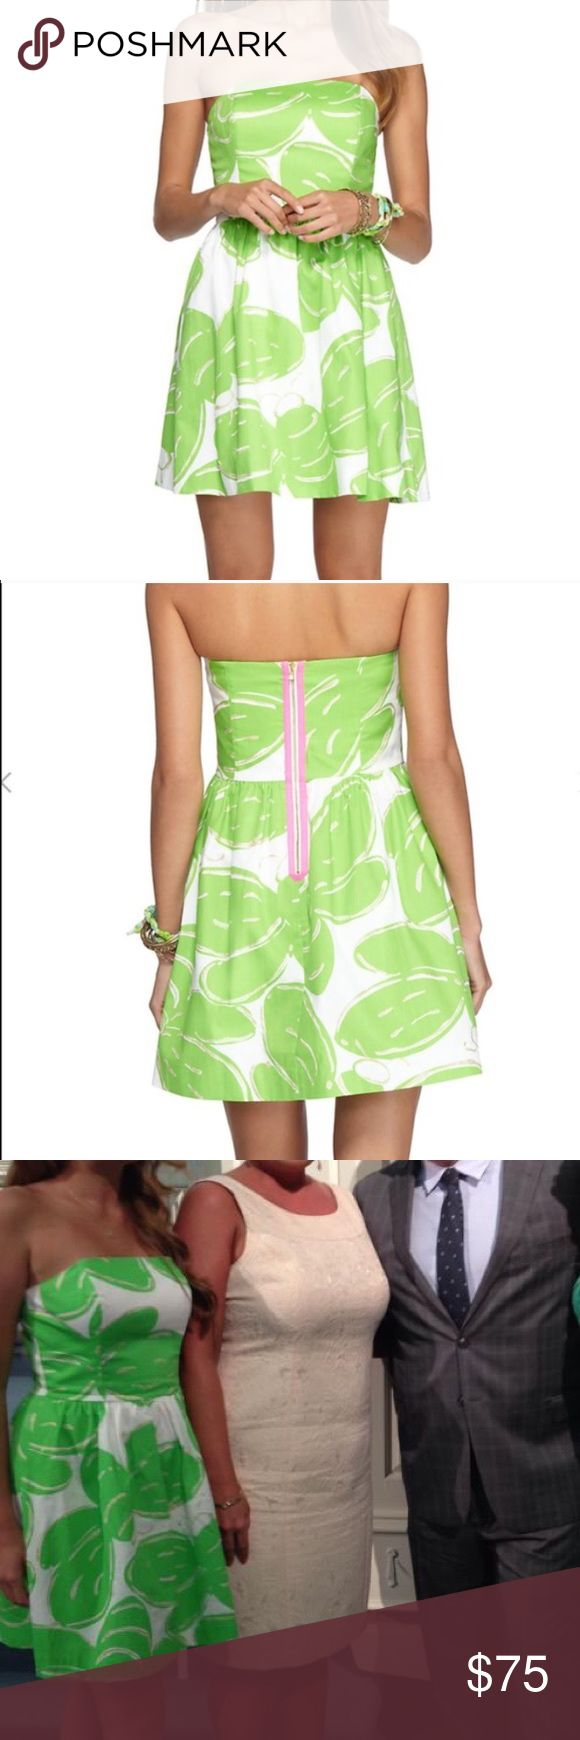 Lilly Pulitzer Tottie Dress  Super cute Lilly dress! I only wore this cutie to a wedding once & can't wear it again because there's so many pictures of me in it hehe! Get your prep on with this Lottie Lilly dress  Lilly Pulitzer Dresses Strapless